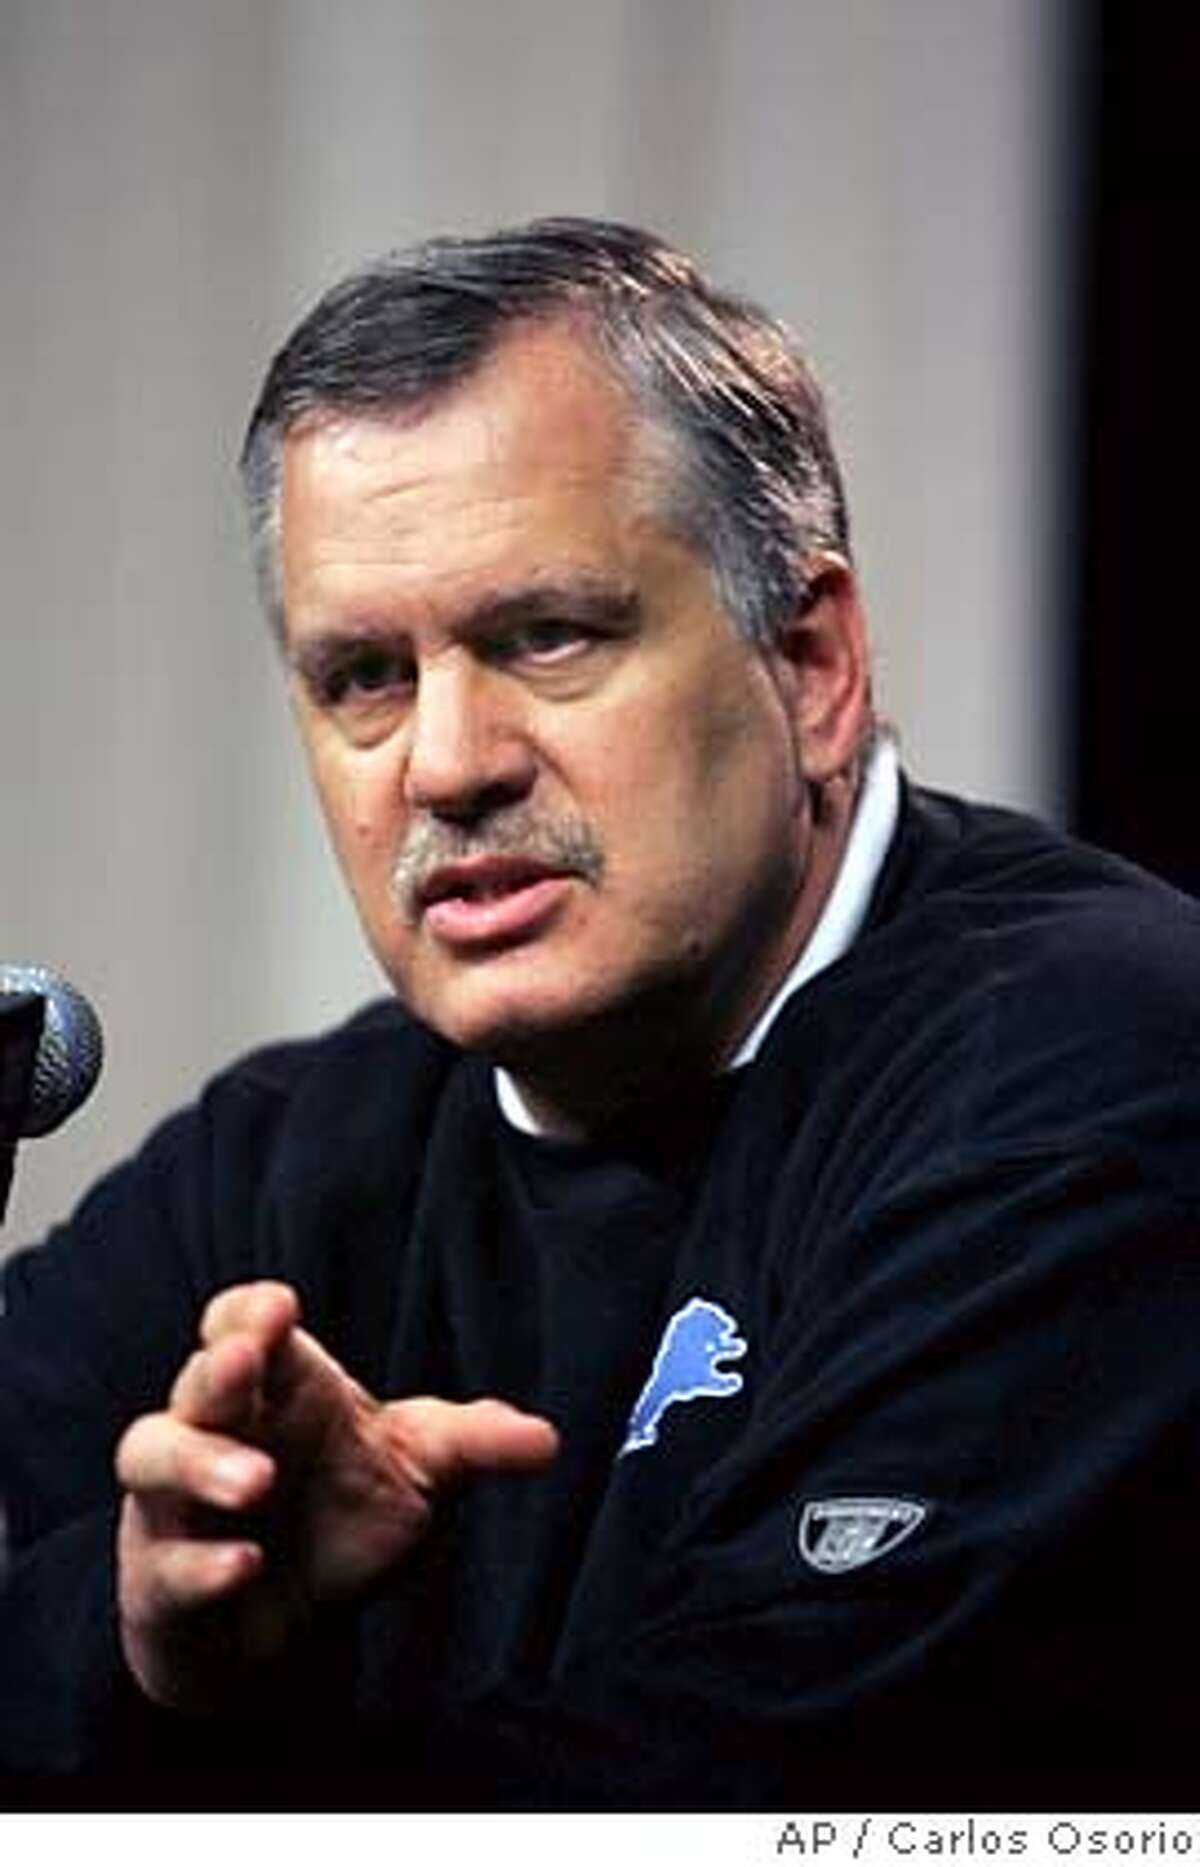 ** FILE **Detroit Lions president Matt Millen answers a question during a news conference at the team's training facility in Allen Park, Mich., in this April 25, 2007 file photo. Millen says he understands fan frustration with him and the organization, but he sees brighter days ahead for the troubled franchise. (AP Photo/Carlos Osorio) APRIL 25, 2007 FILE PHOTO EFE OUT